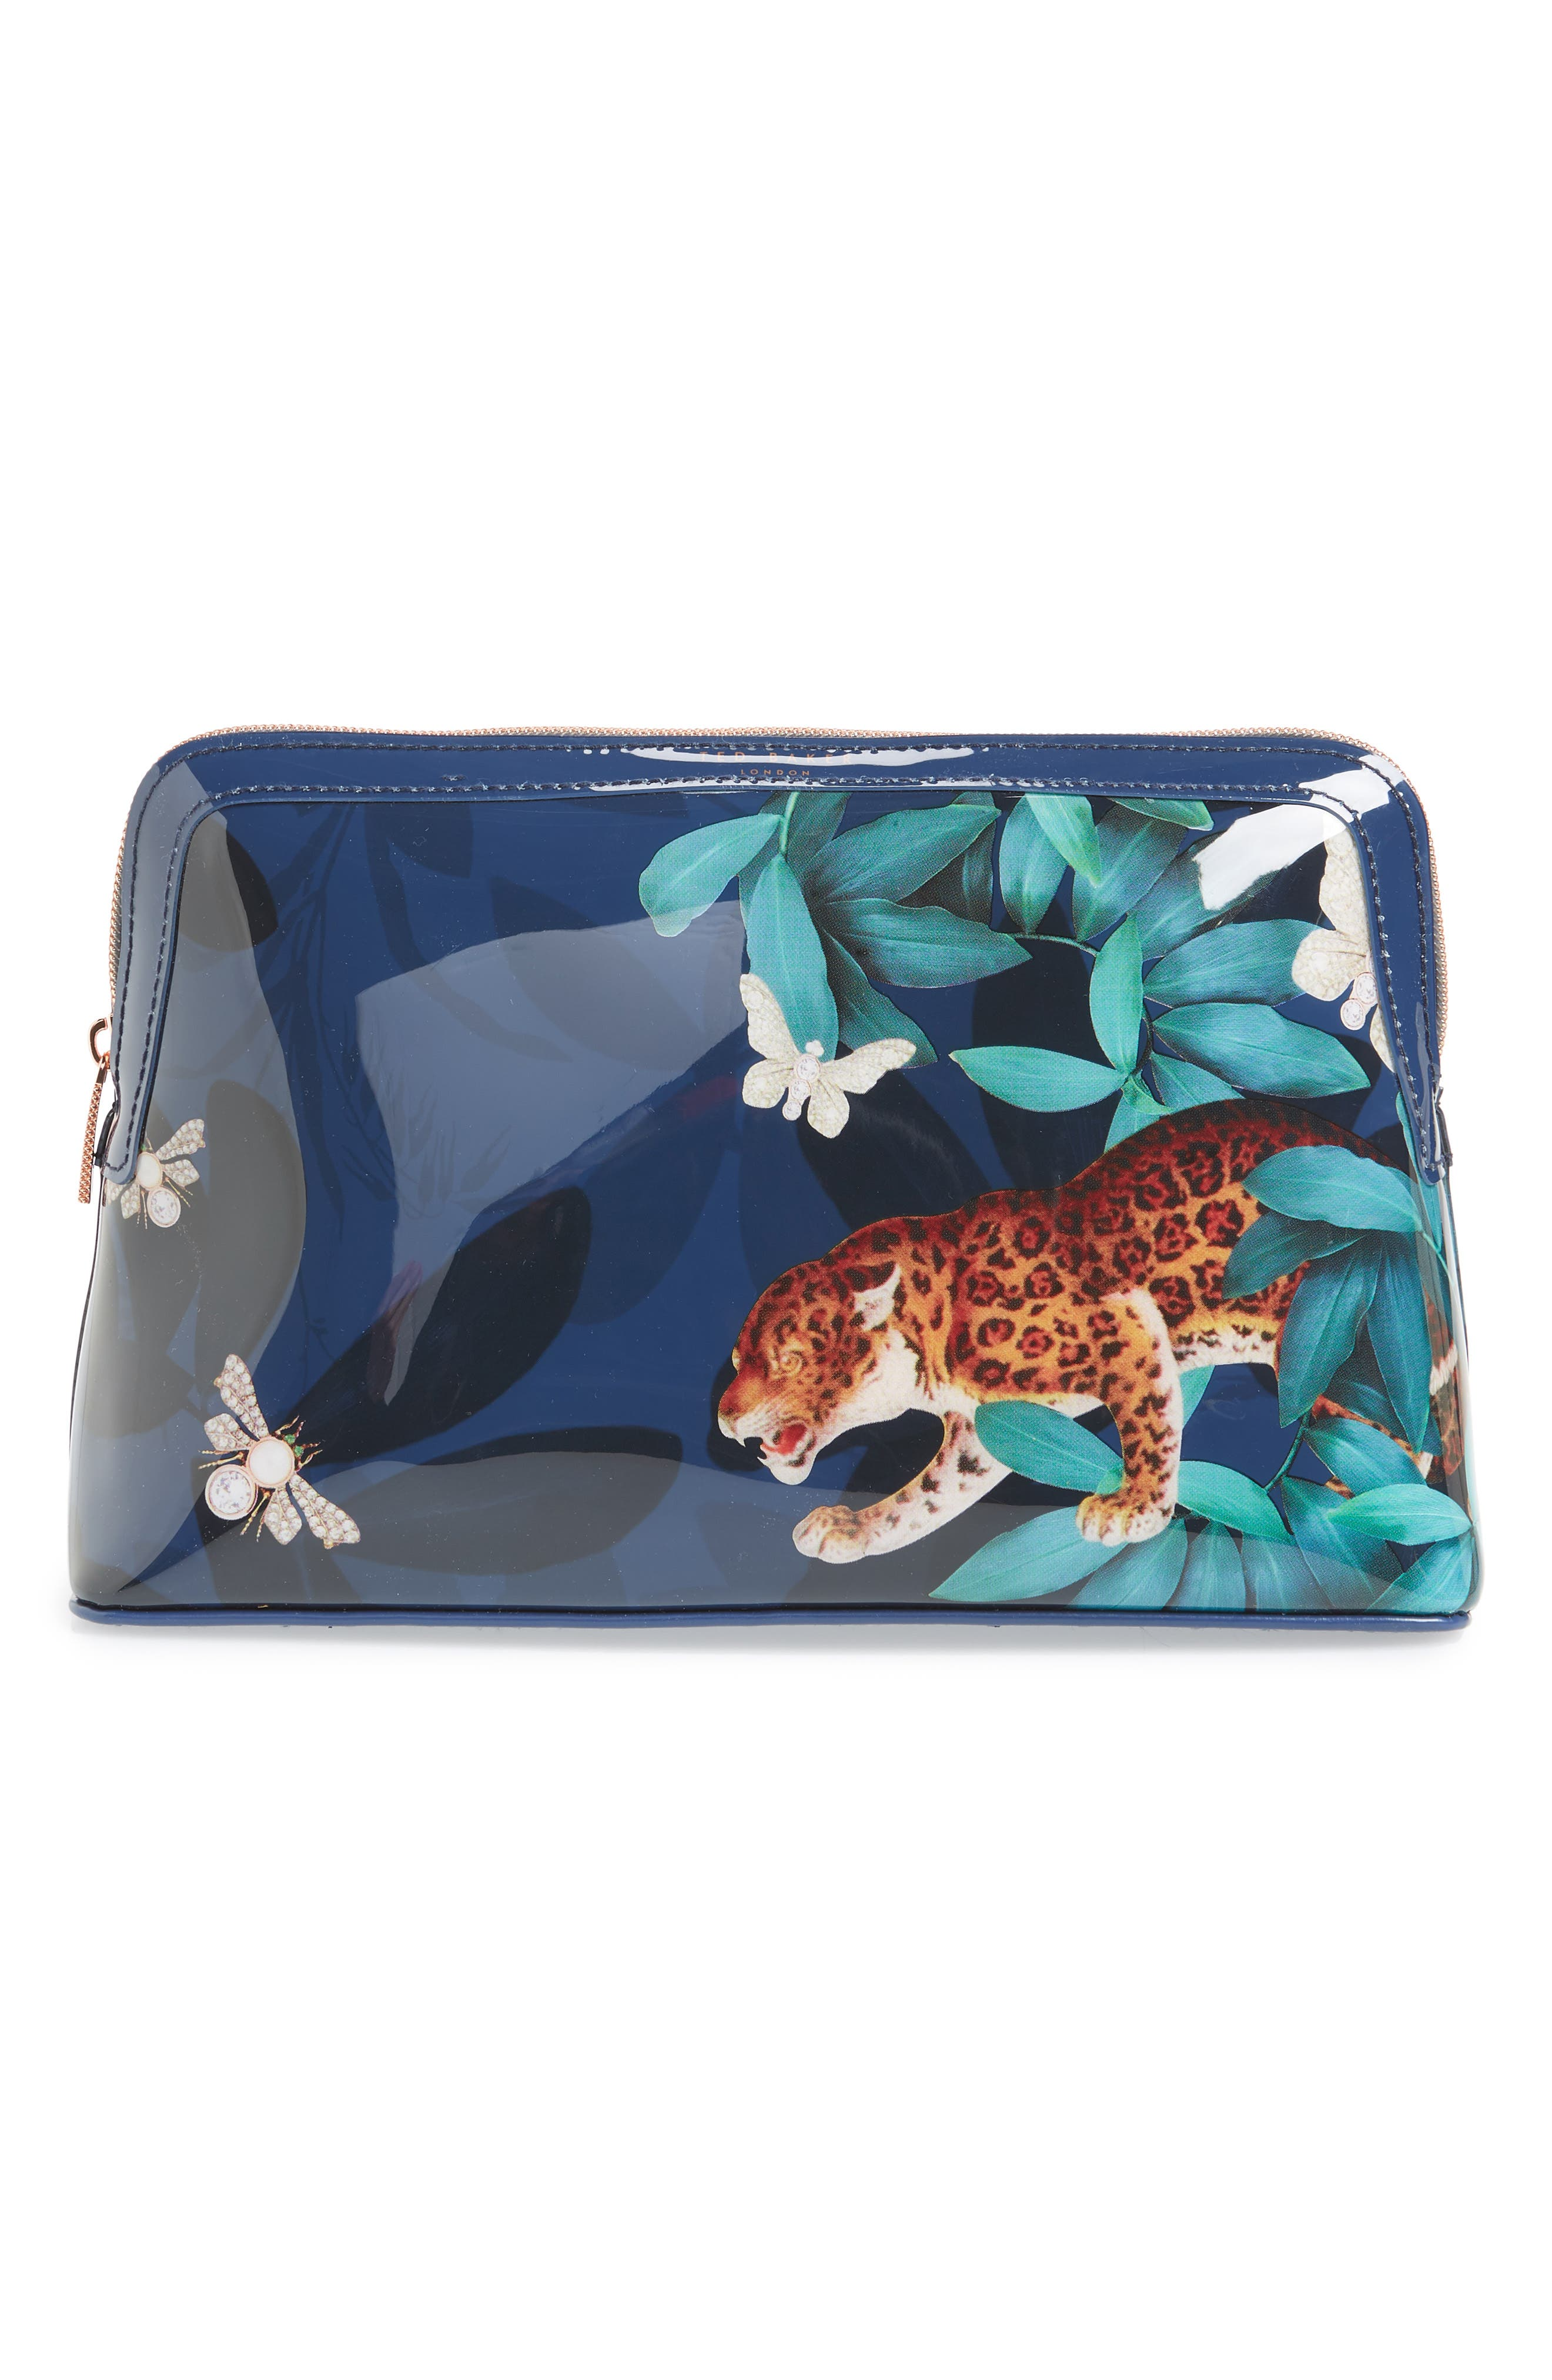 TED BAKER LONDON Leoniee Houdini Large Cosmetics Case, Main, color, NAVY